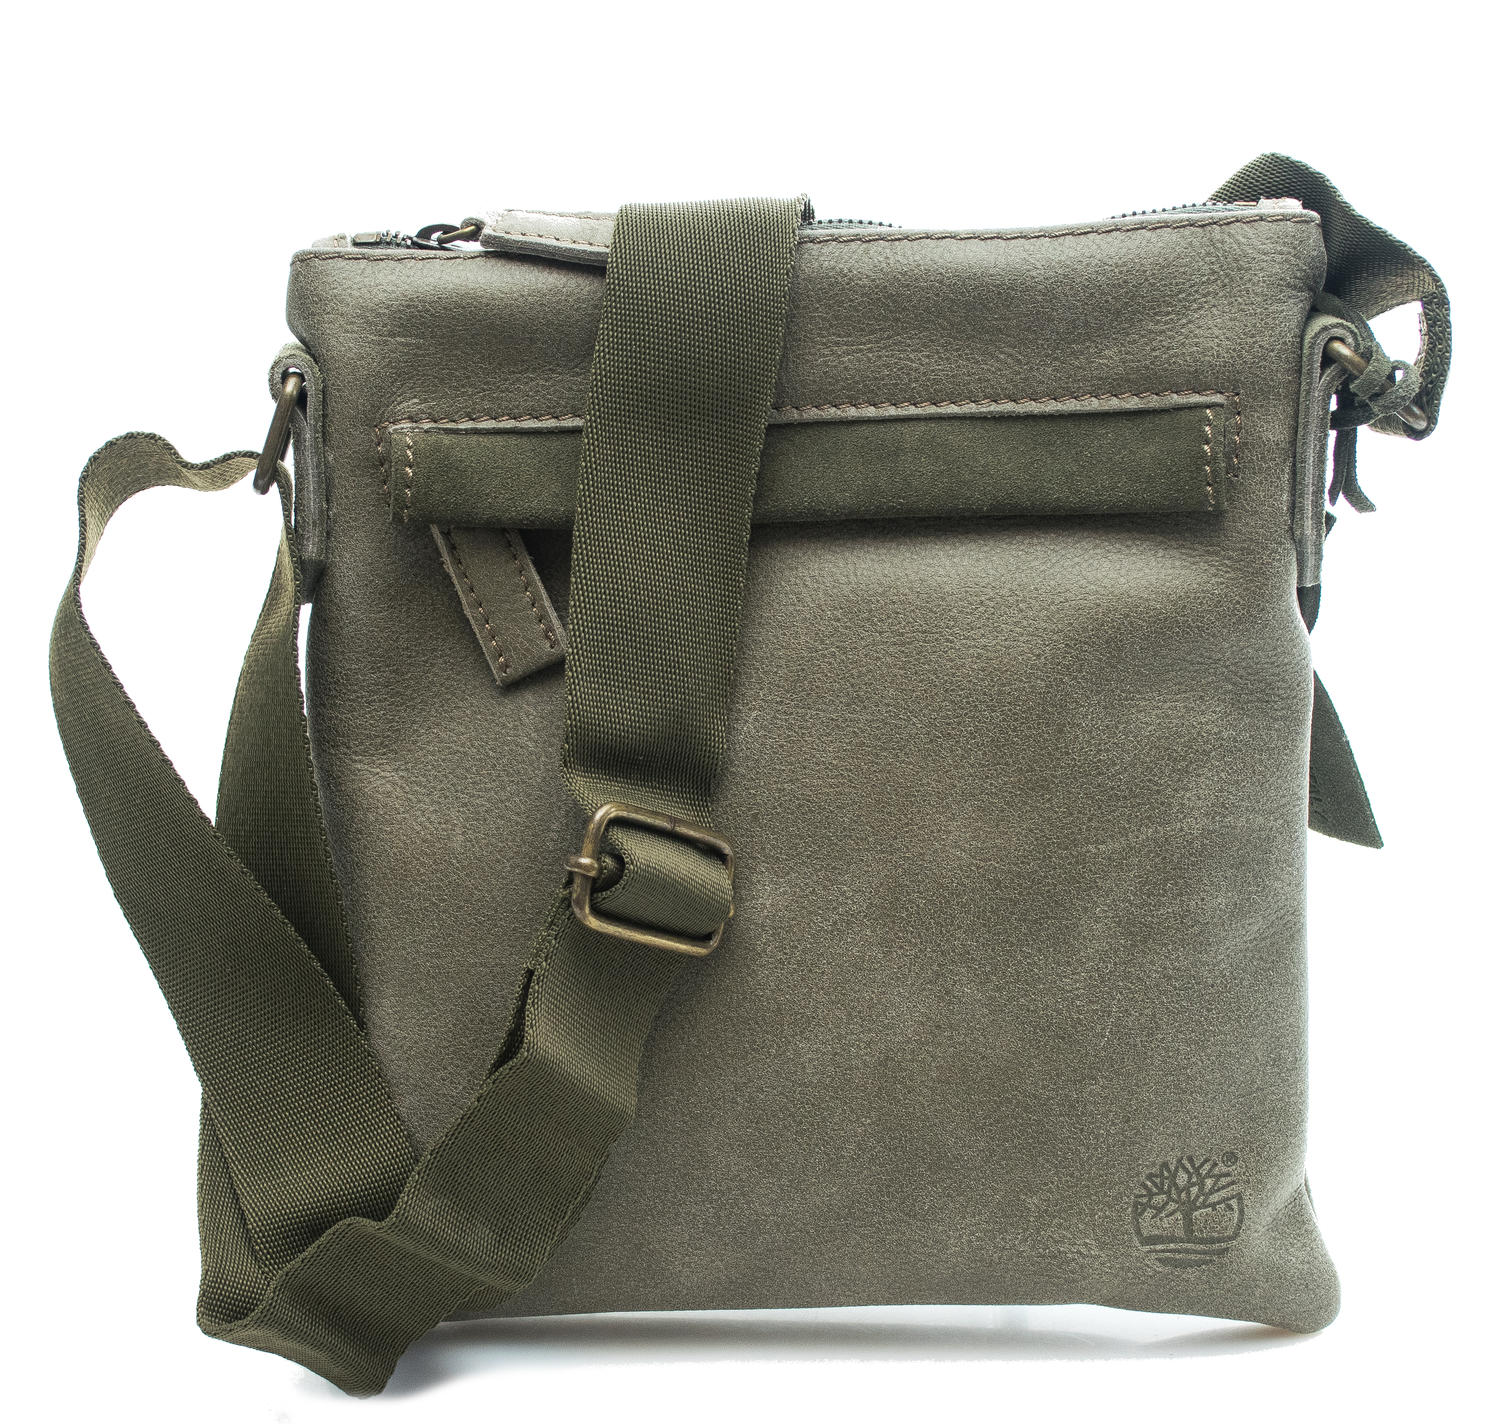 e29bf8e66b04 Timberland bag newark line in leather shop online at best prices jpg  1500x1424 Timberland bag